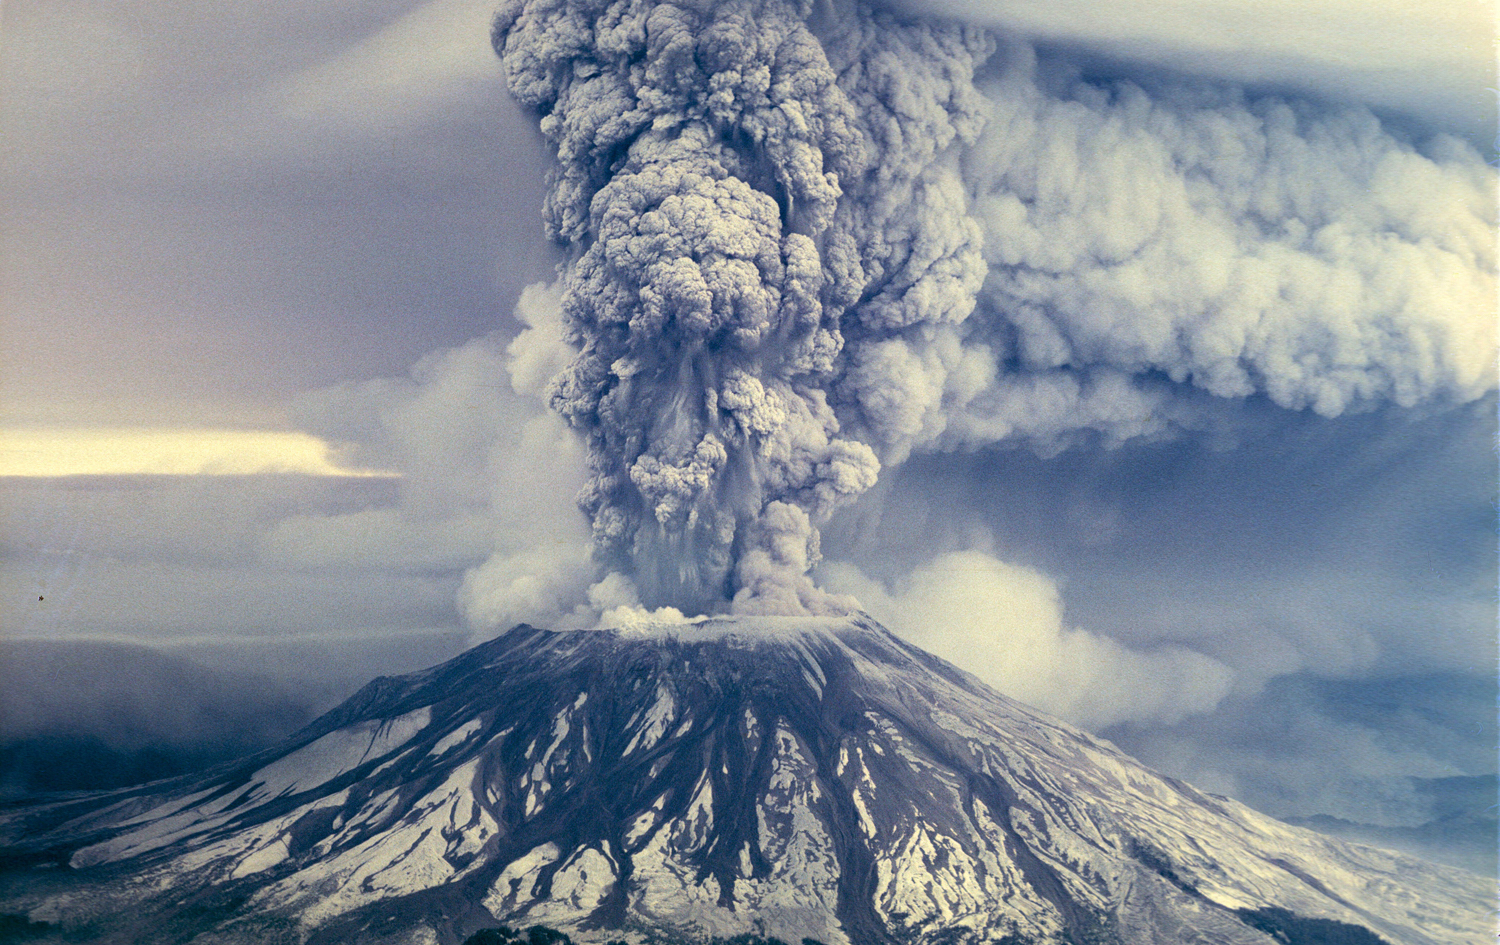 Mount St Helens in Washington State erupted on May 18, 1980. It was a day I'll never forget. An estimated 540 million tons of ash were propelled into the sky. This fabulous image was found  here  (accessed 2/1/18).